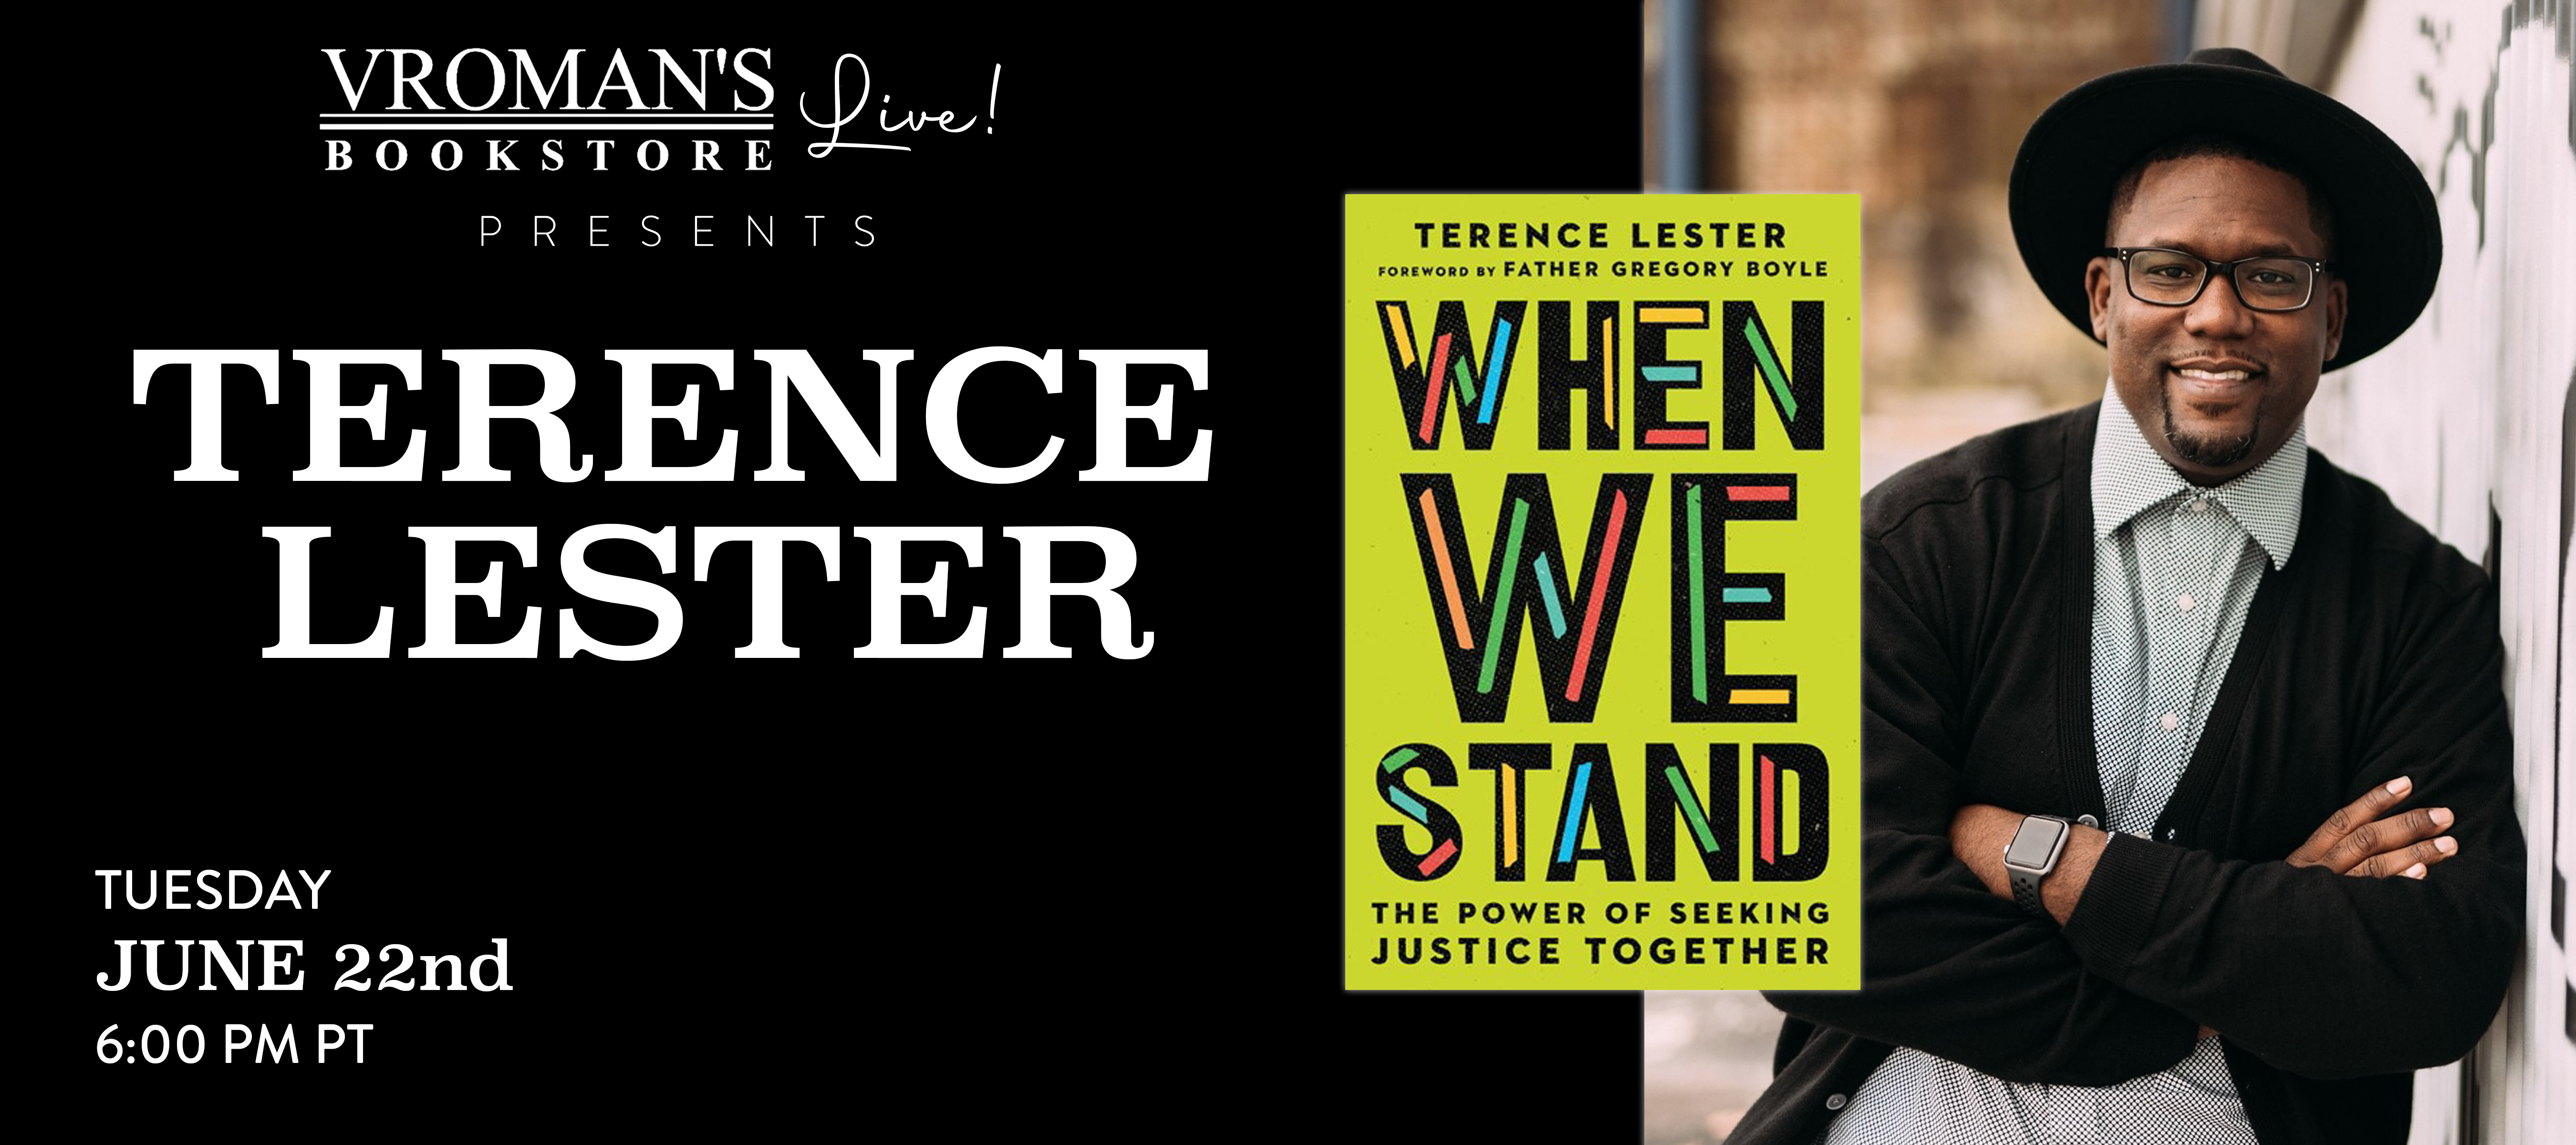 Image of Vroman's Live - Terence Lester discusses When We Stand: The Power of Seeking Justice Together on June 22nd at 6pm on Crowdcast